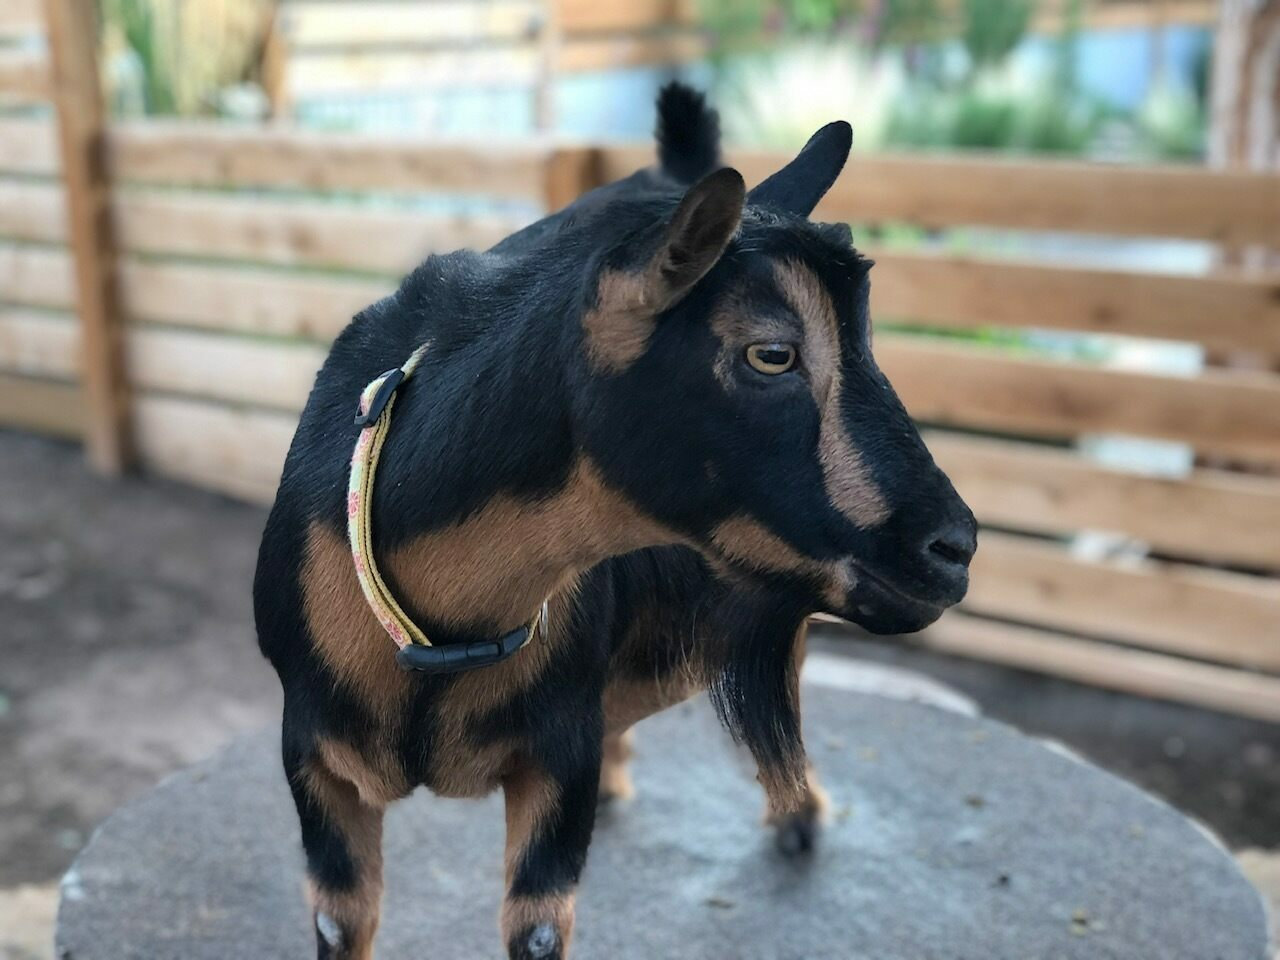 Lulu (pictured) and her fellow Nigerian Dwarf goats lived happily in a pen in Emily Sherer's backyard.